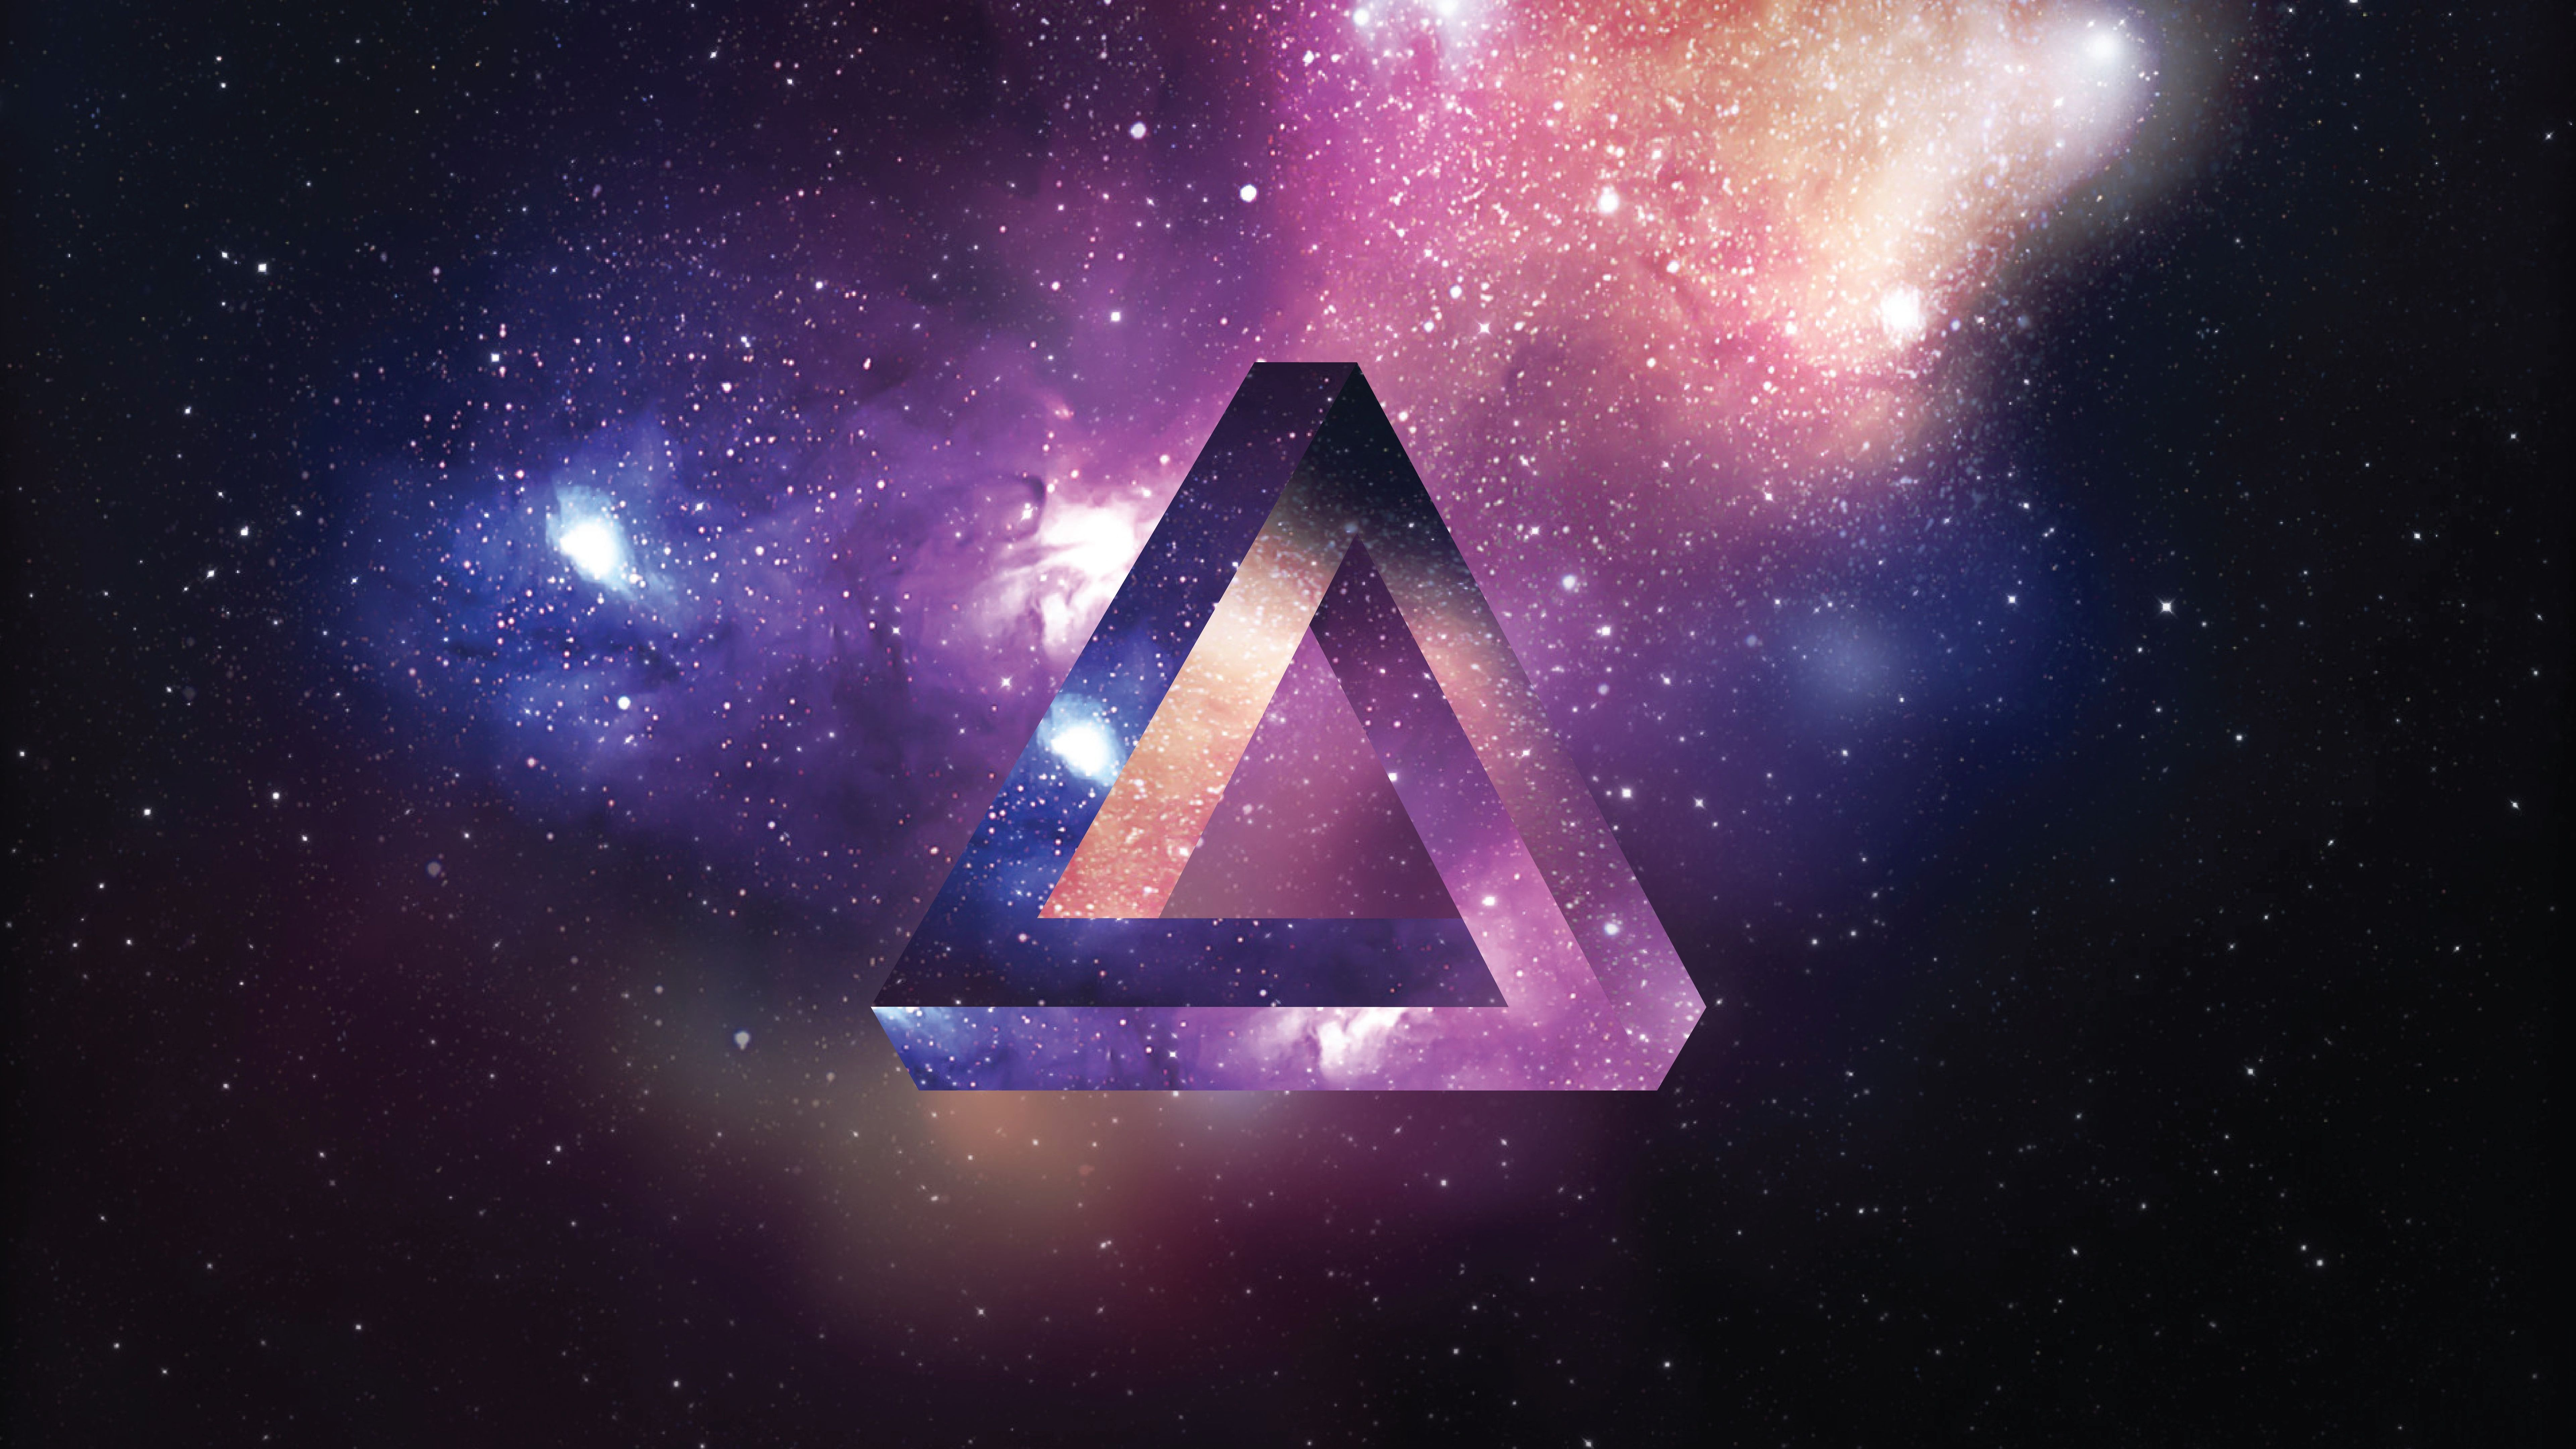 7680x4320 Space Triangle 8K UHD Wallpaper | Wallpapers.gg